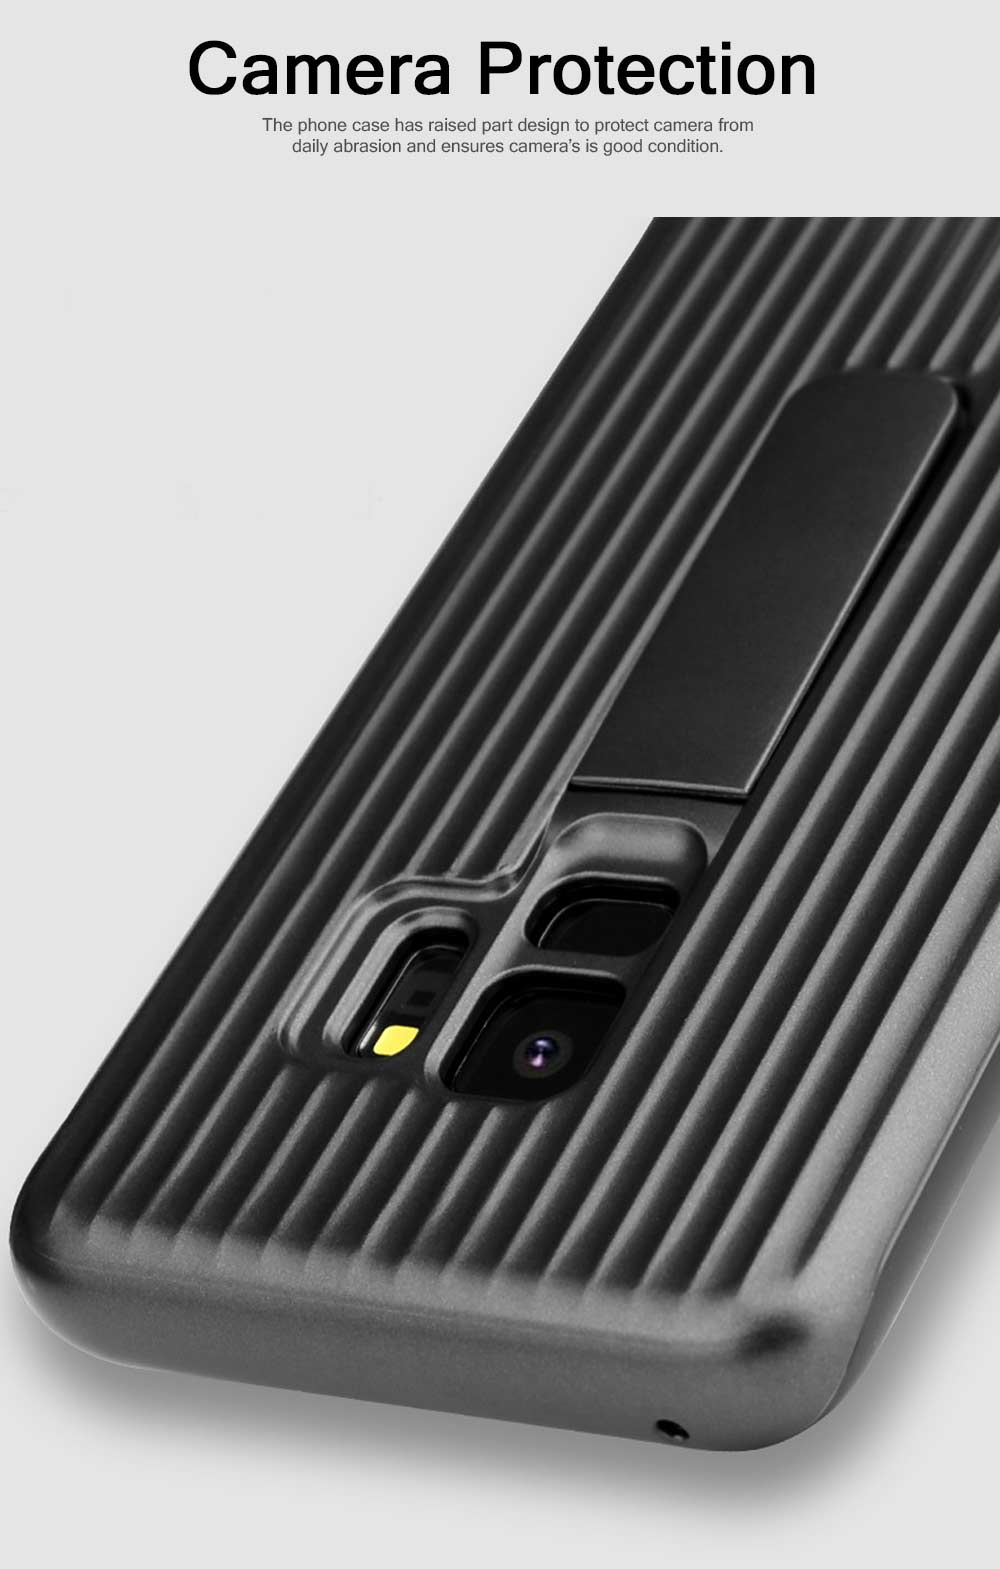 New-style Samsung Phone Case for Galaxy S9 & S9 Plus Vehicle-Mounted Protective Case Vertical Support Phone Case 4